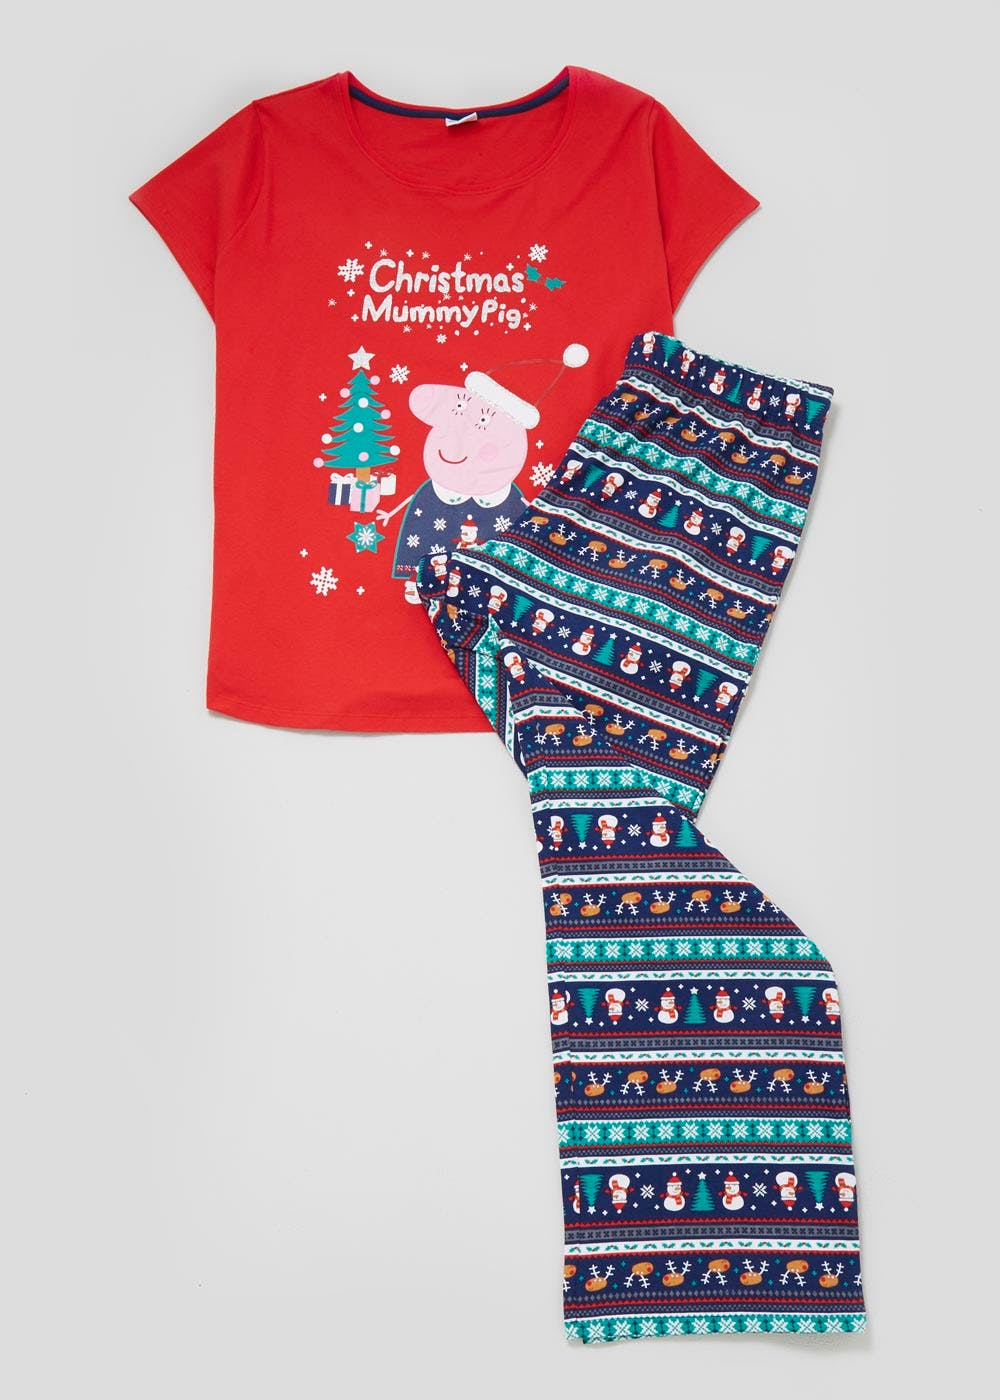 da52cff6 Family Mummy Pig Christmas Pyjama Set – Red – Matalan